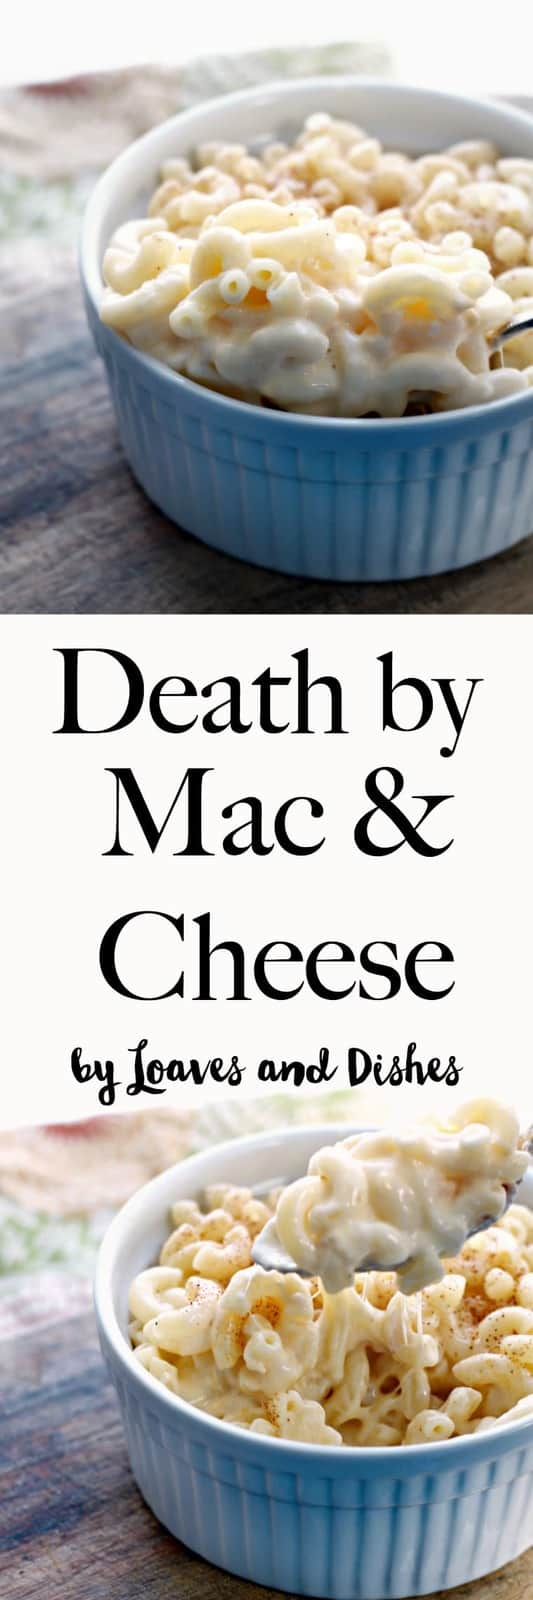 Death By Macaroni And Cheese Loaves And Dishes